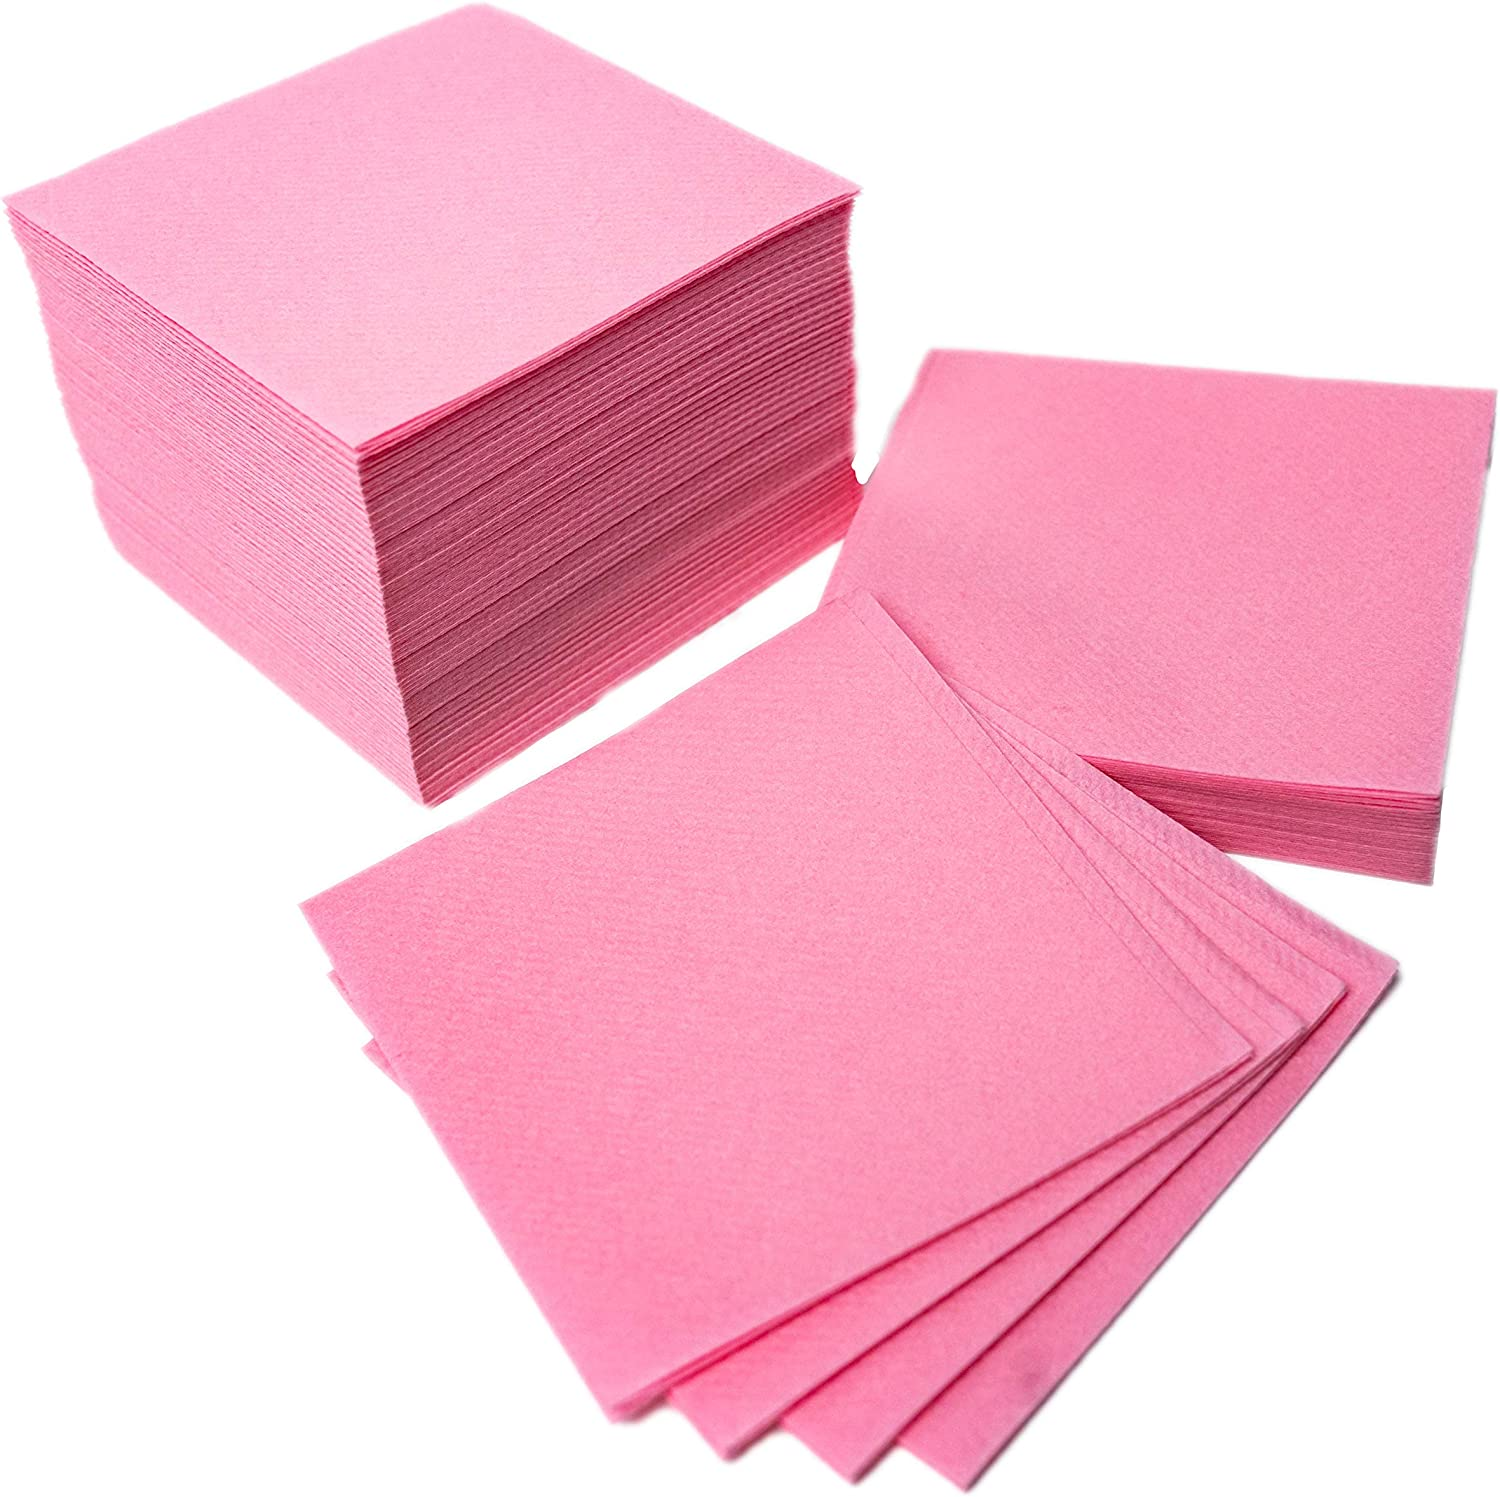 """American Homestead Cocktail Napkins - Small 4"""" x 4"""" Linen-Like Disposable Beverage/Bar Napkins - Bulk Square Napkins Eco-Friendly & Compostable - Everyday Use, Party or Wedding (100 Count, Pink)"""